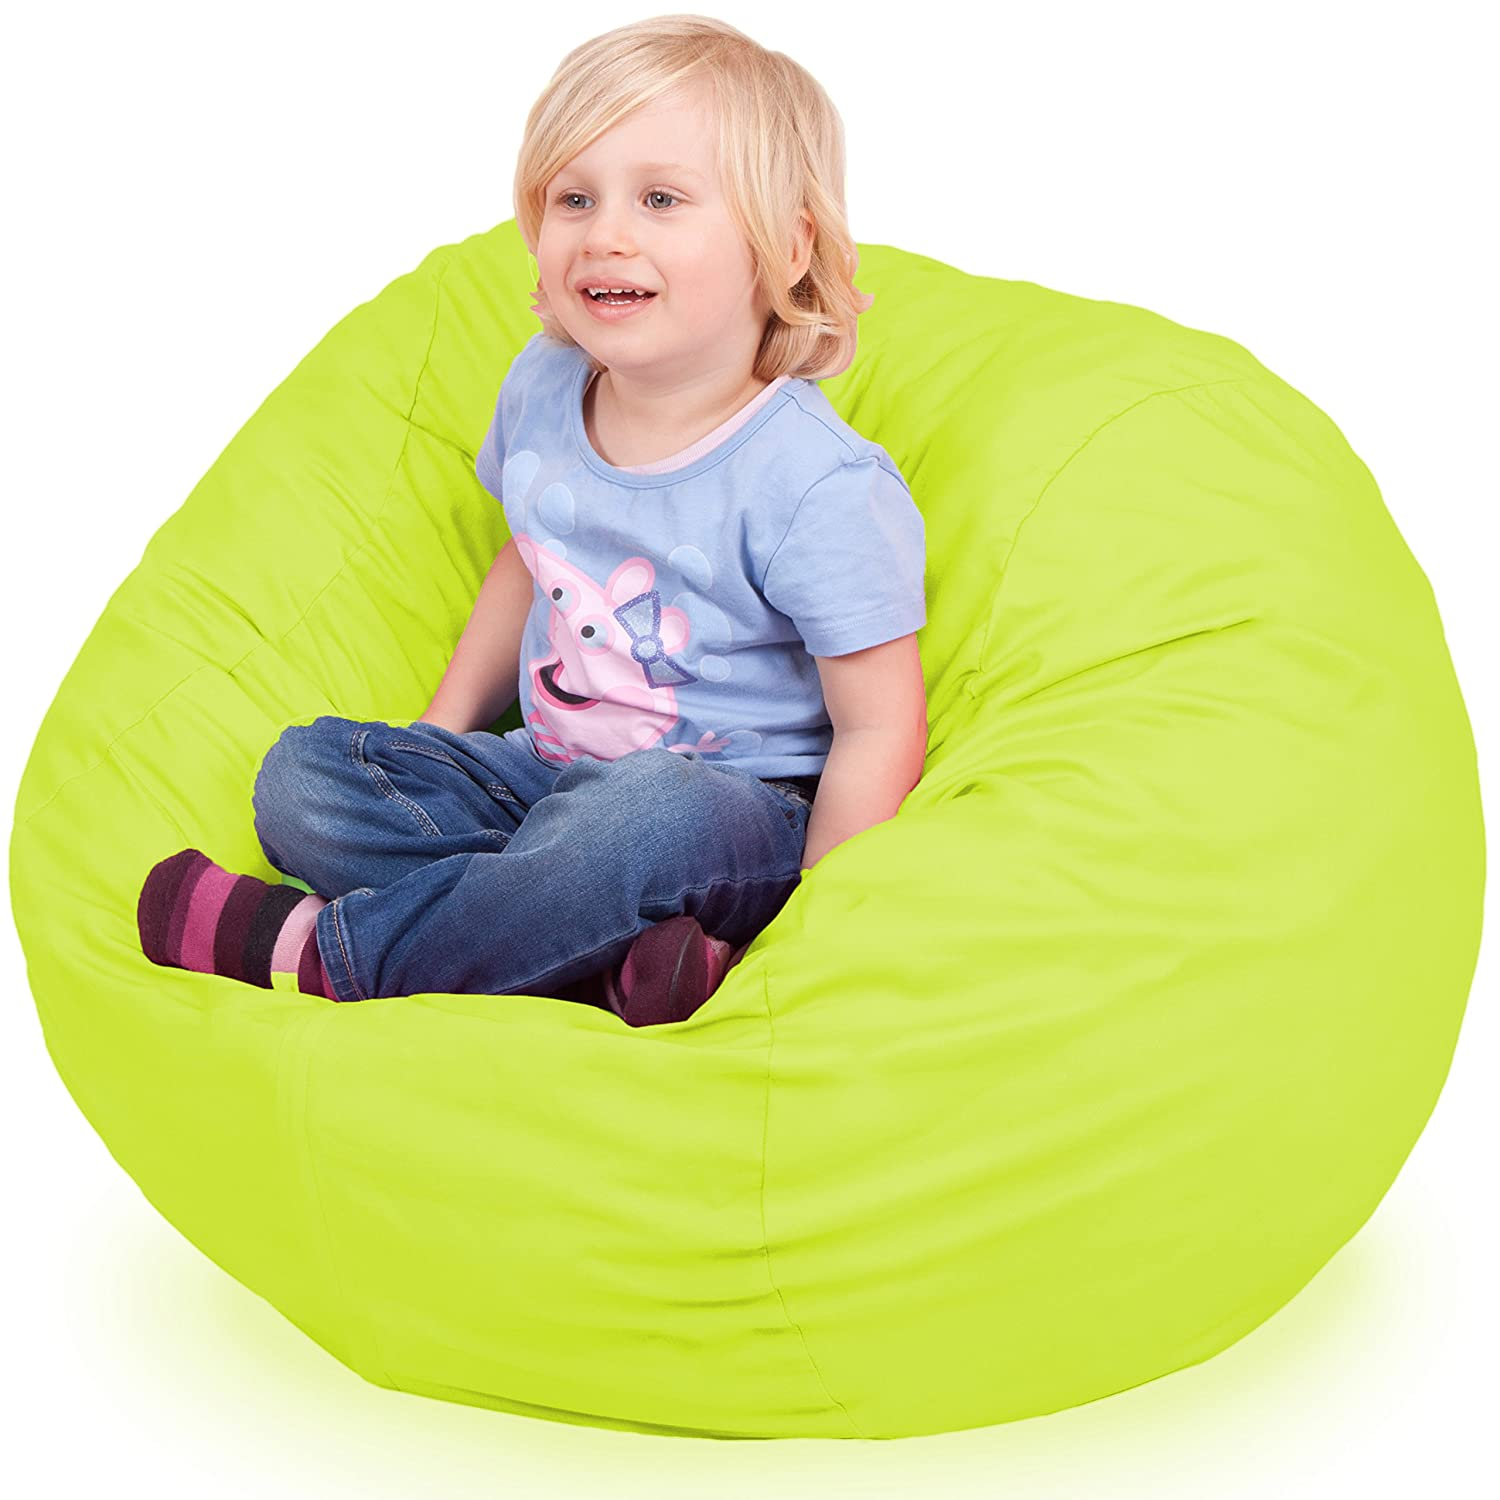 Amazon Oversized Bean Bag Chair in Spicy Lime Machine